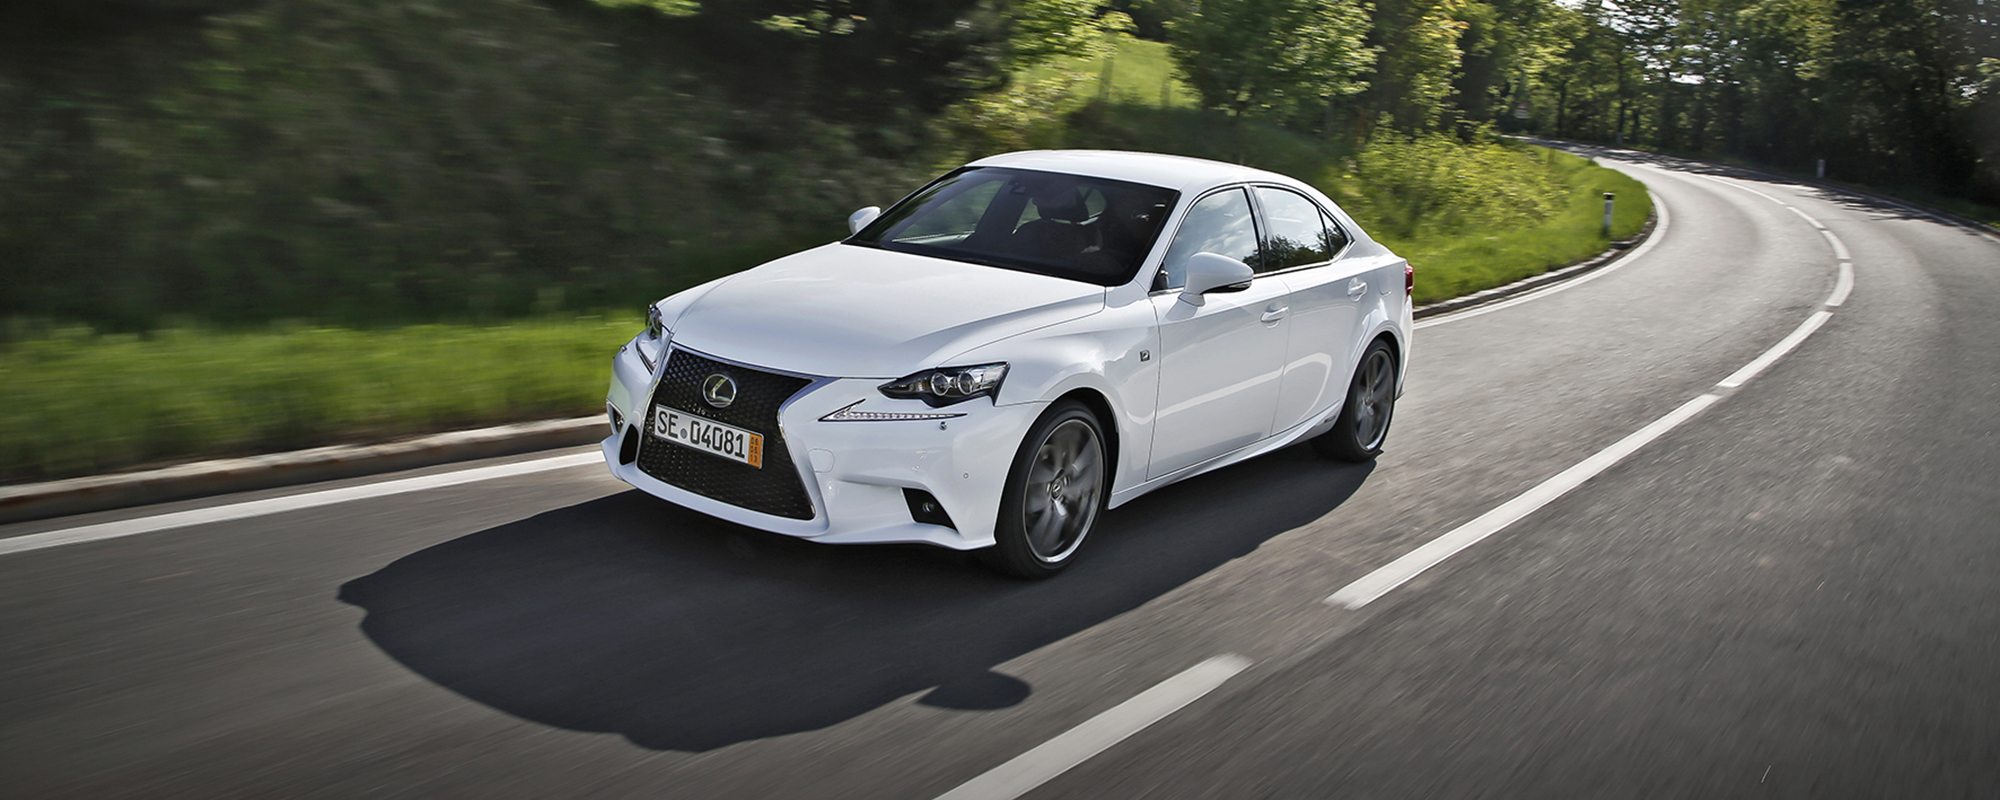 Lexus IS 300h 'Clean Road Car of the Year 2014'